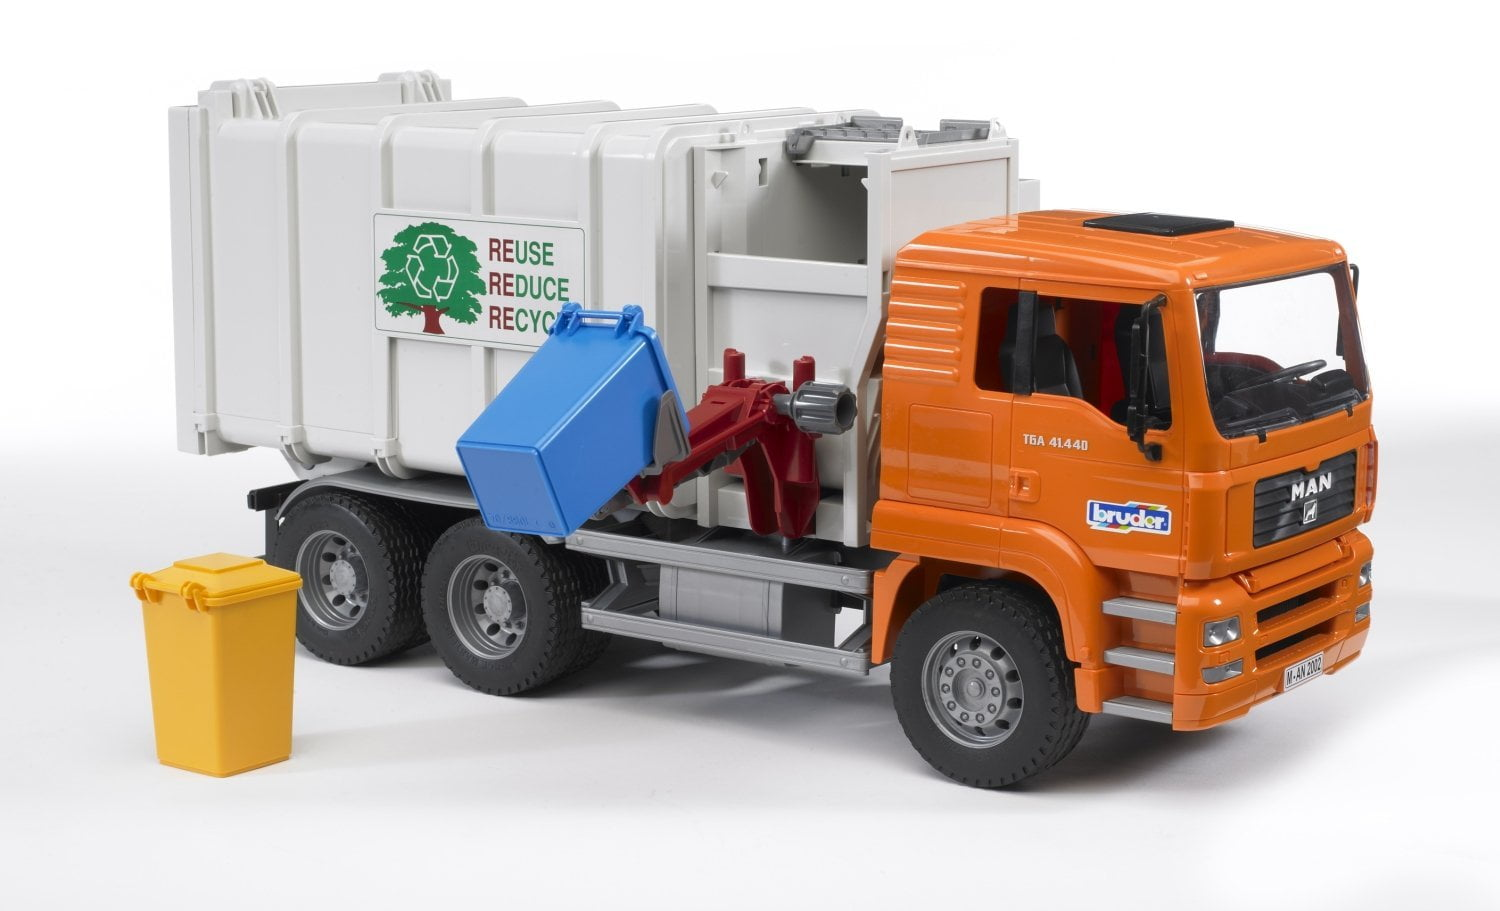 Get ready garbage truck coloring book - The Top 15 Coolest Garbage Truck Toys For Sale In 2017 And Which Is The Best Trash Truck Hauler For The Most Fun Cleverleverage Com